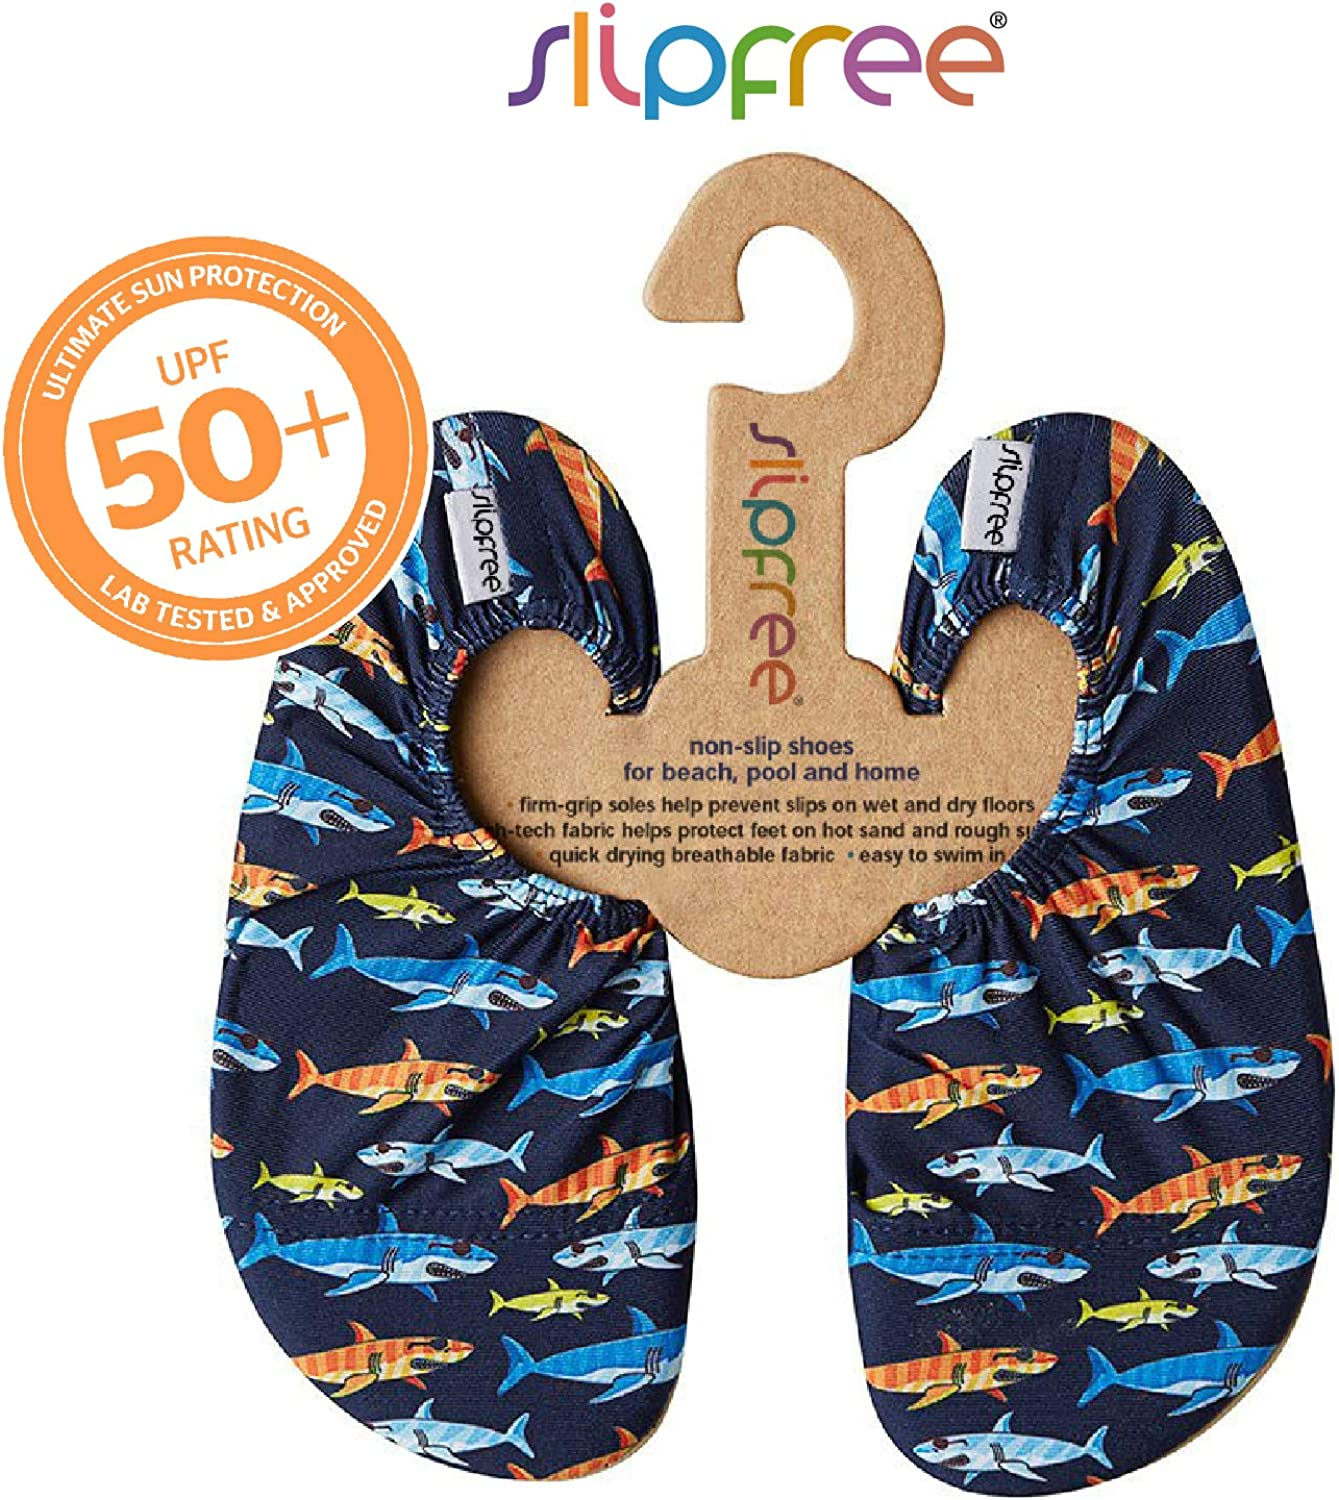 Pool and Home Water Shoes for Beach Boys Non-Slip UPF50+ Barefoot Swim Slipfree Shiver Large